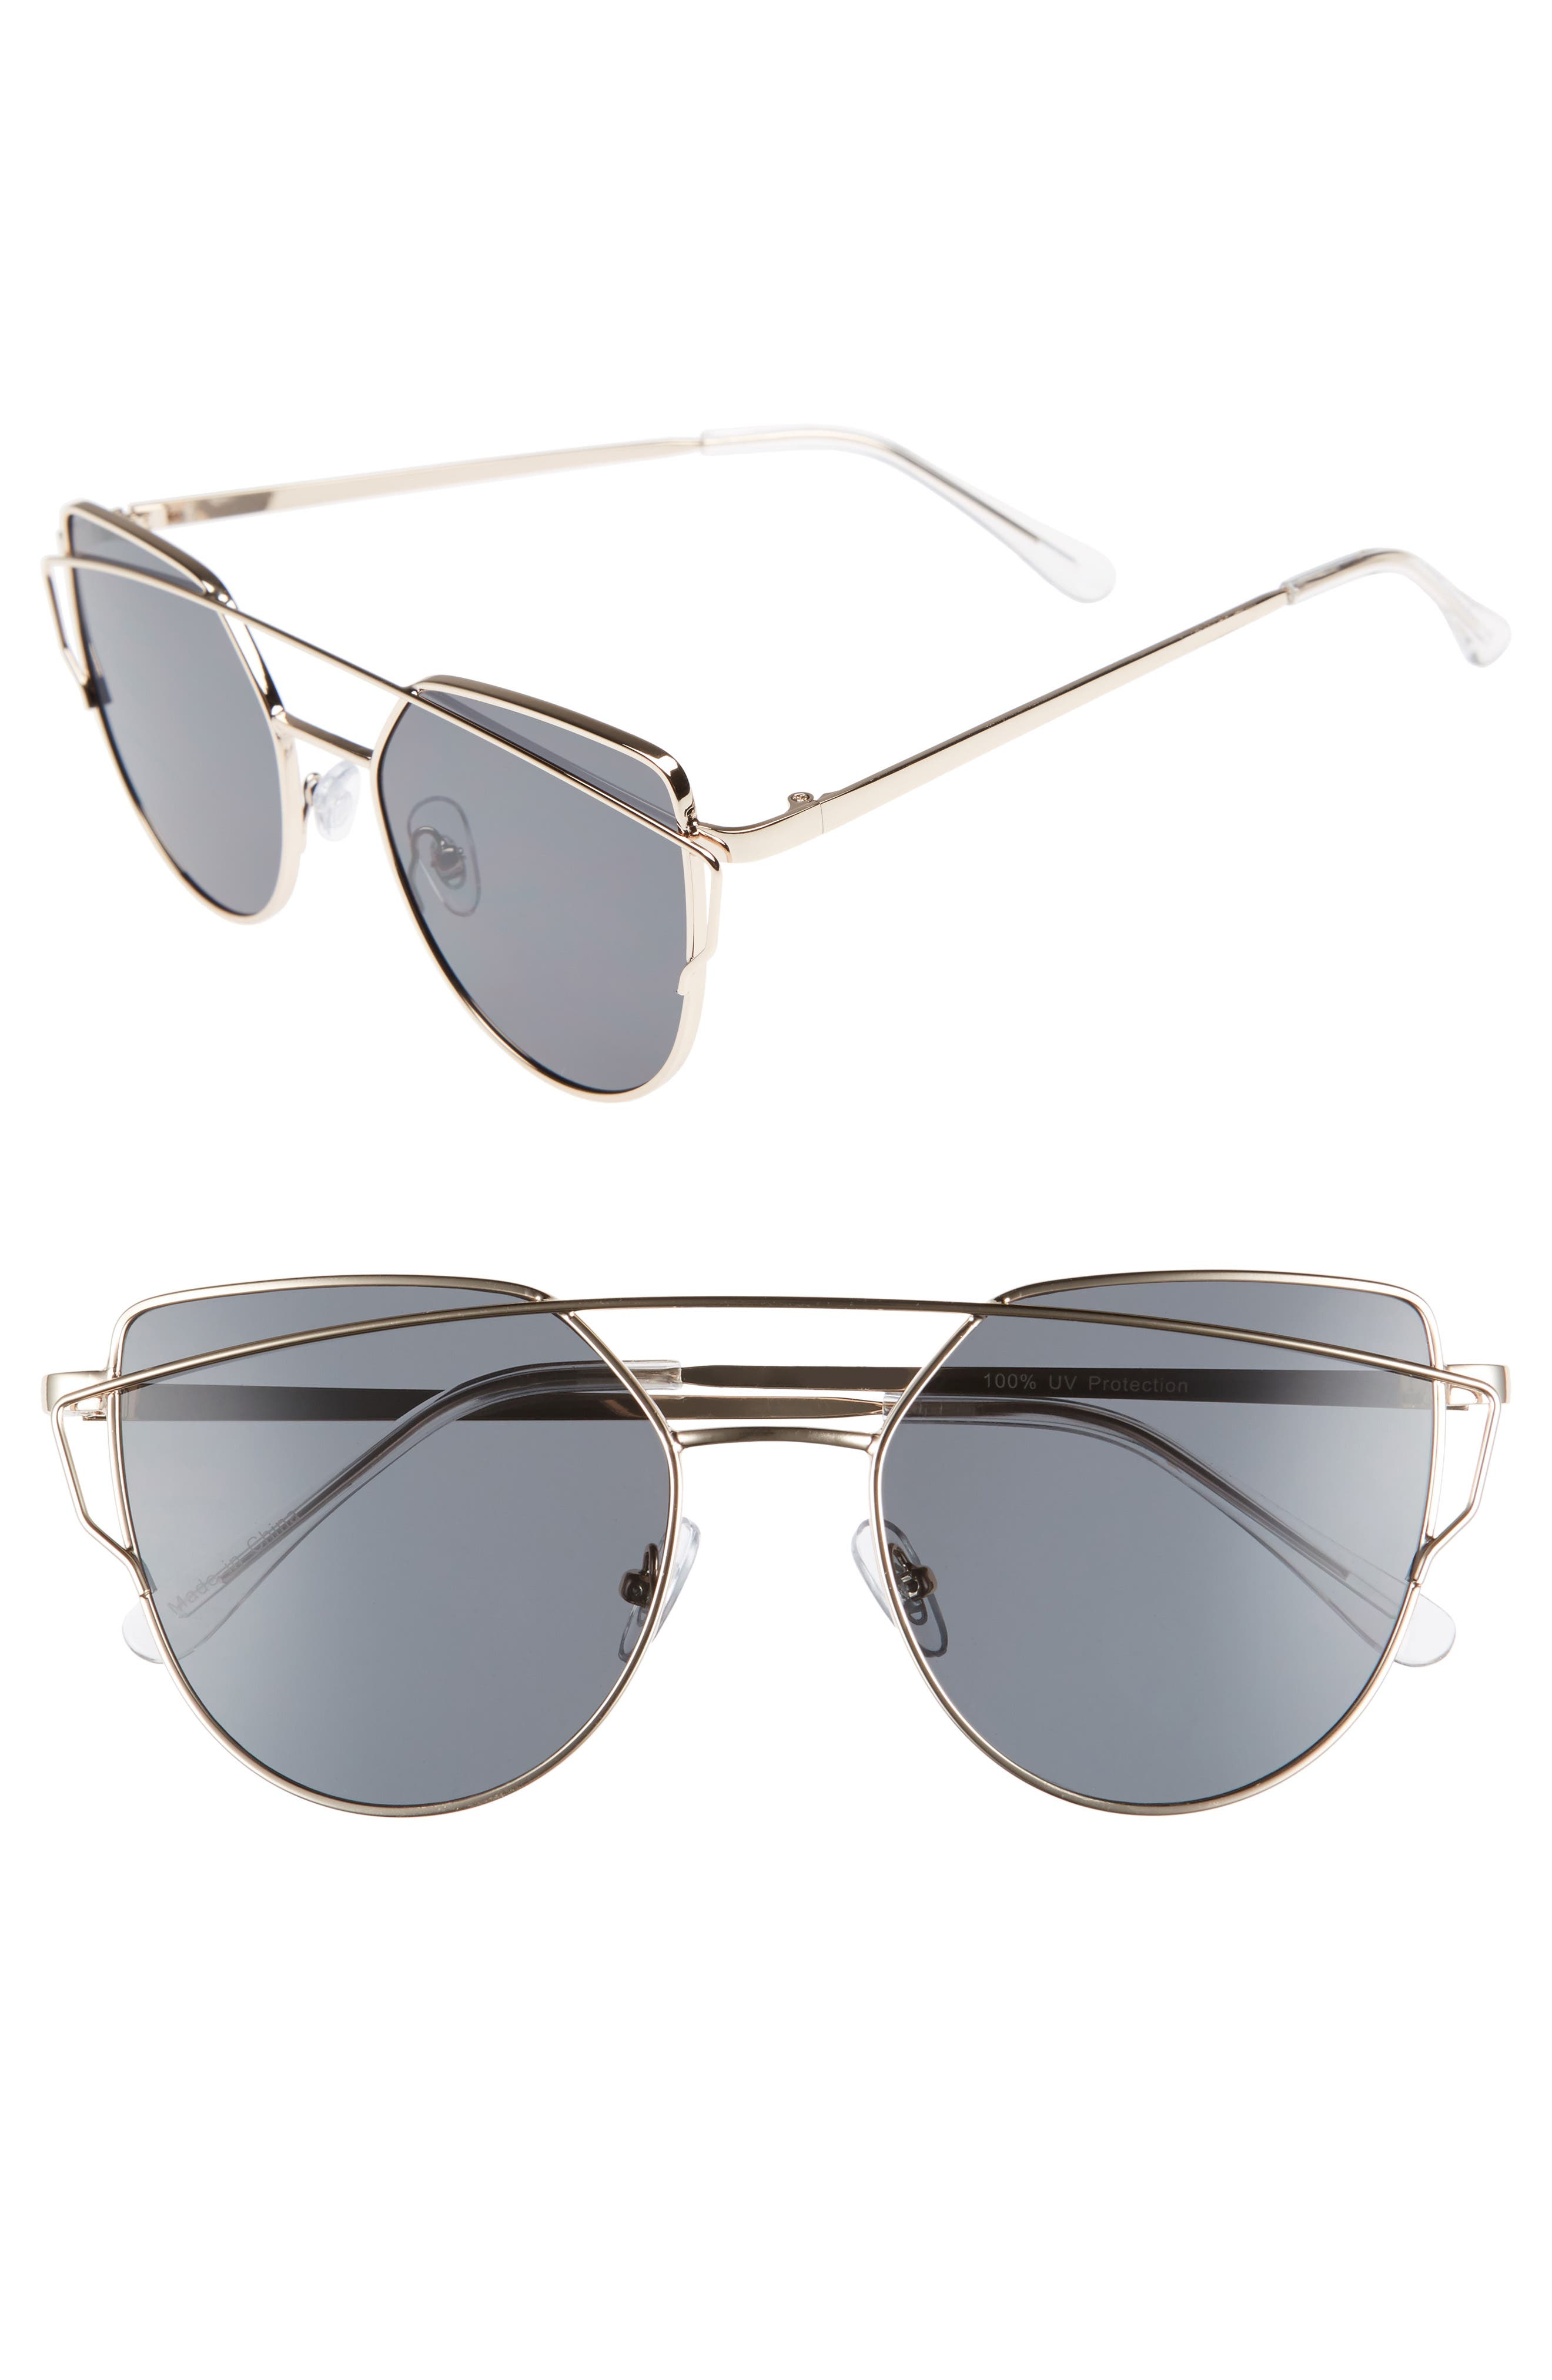 51mm Thin Brow Angular Aviator Sunglasses,                             Main thumbnail 7, color,